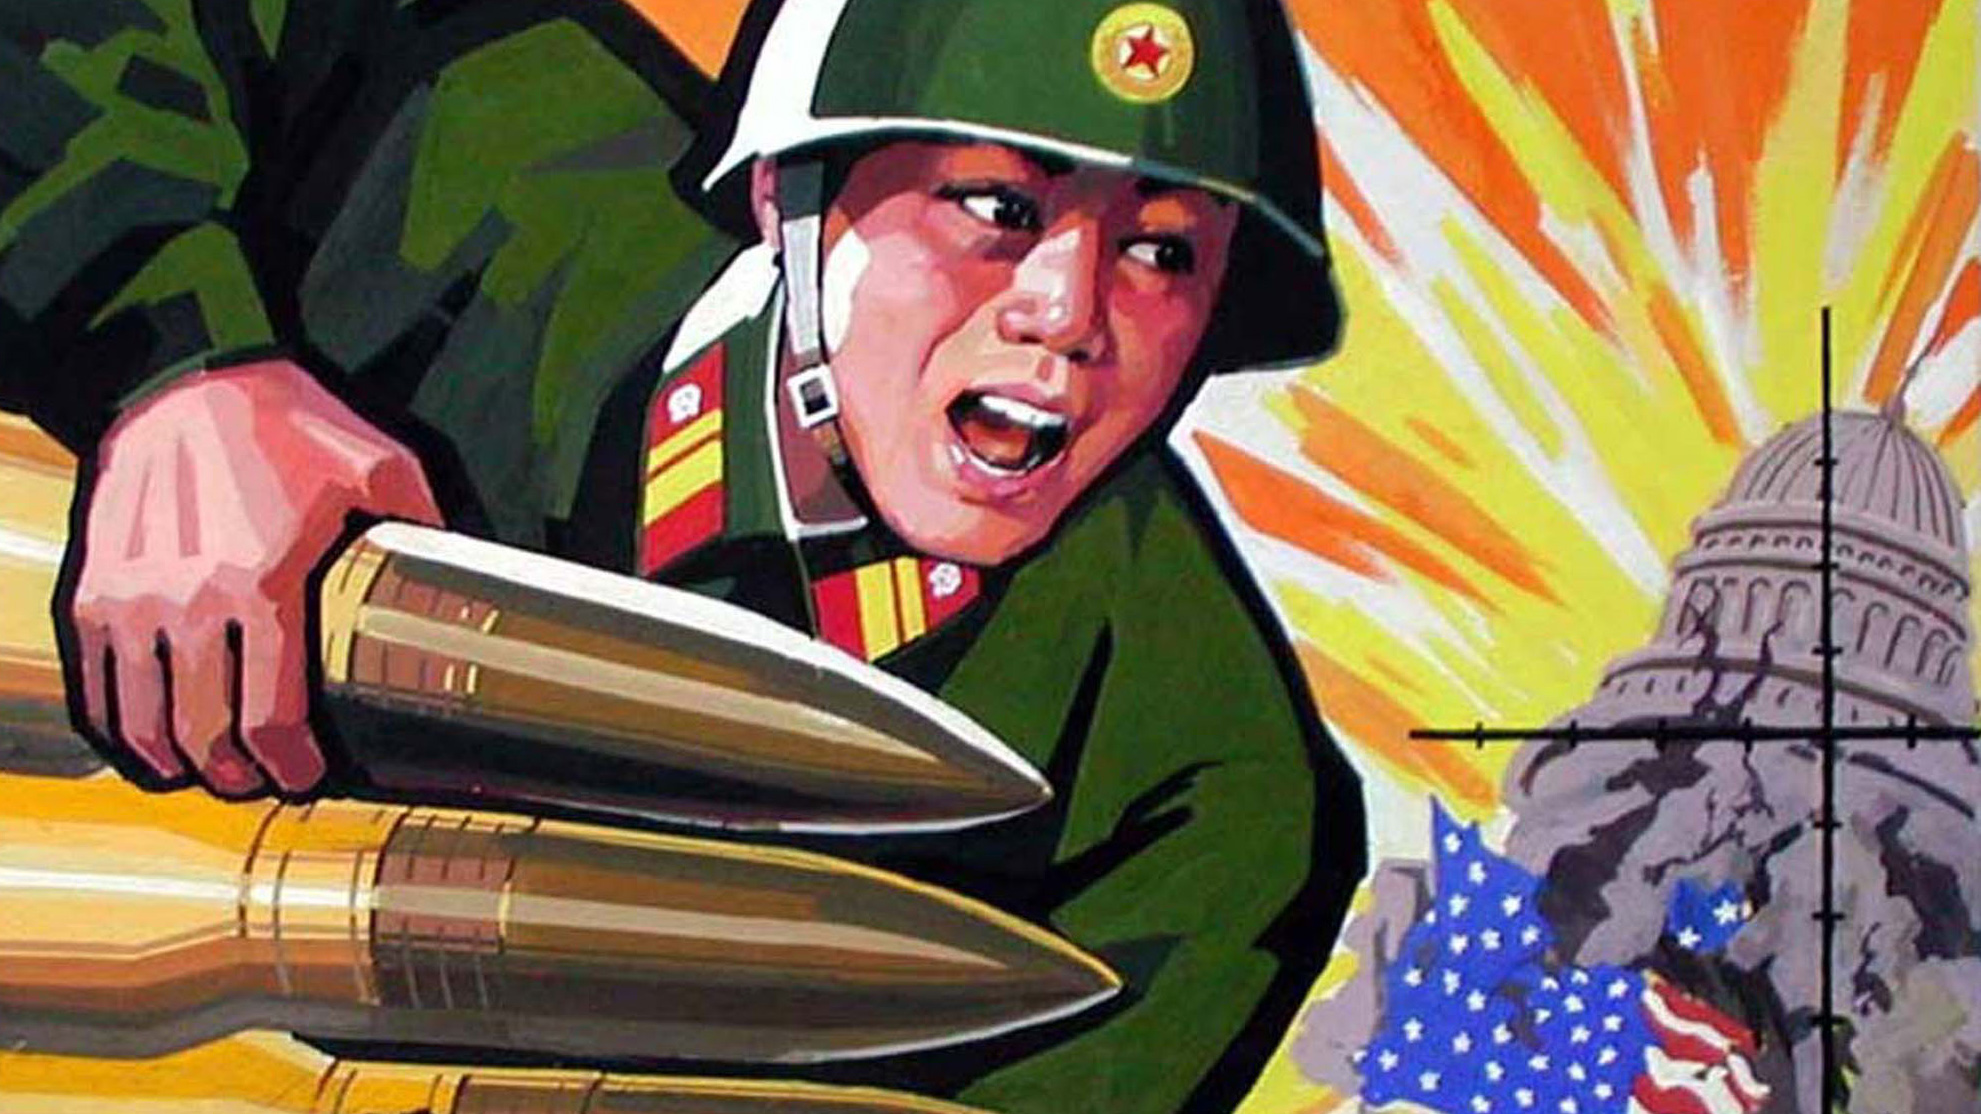 North Korea could cross ICBM threshold next year, U.S. officials warn in new assessment